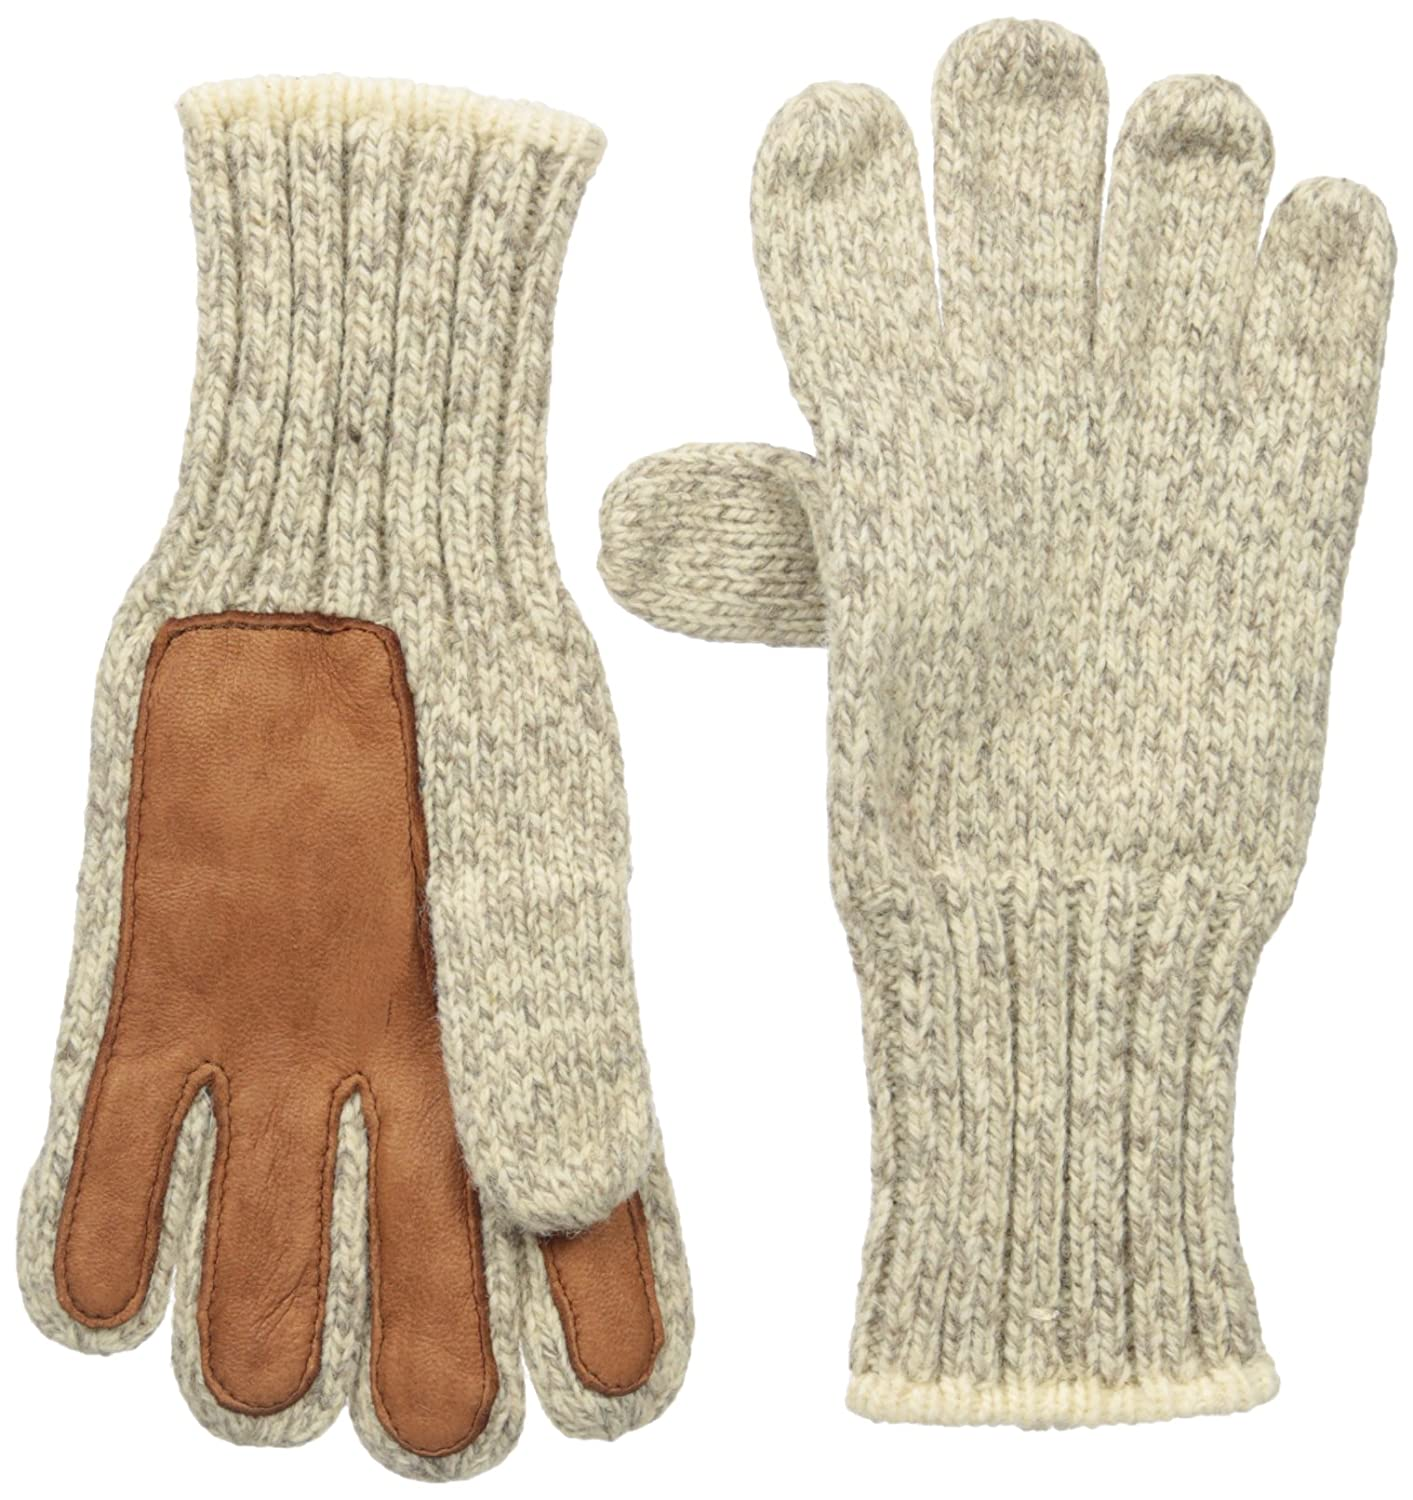 Mens novelty gloves - Mens Novelty Gloves 47